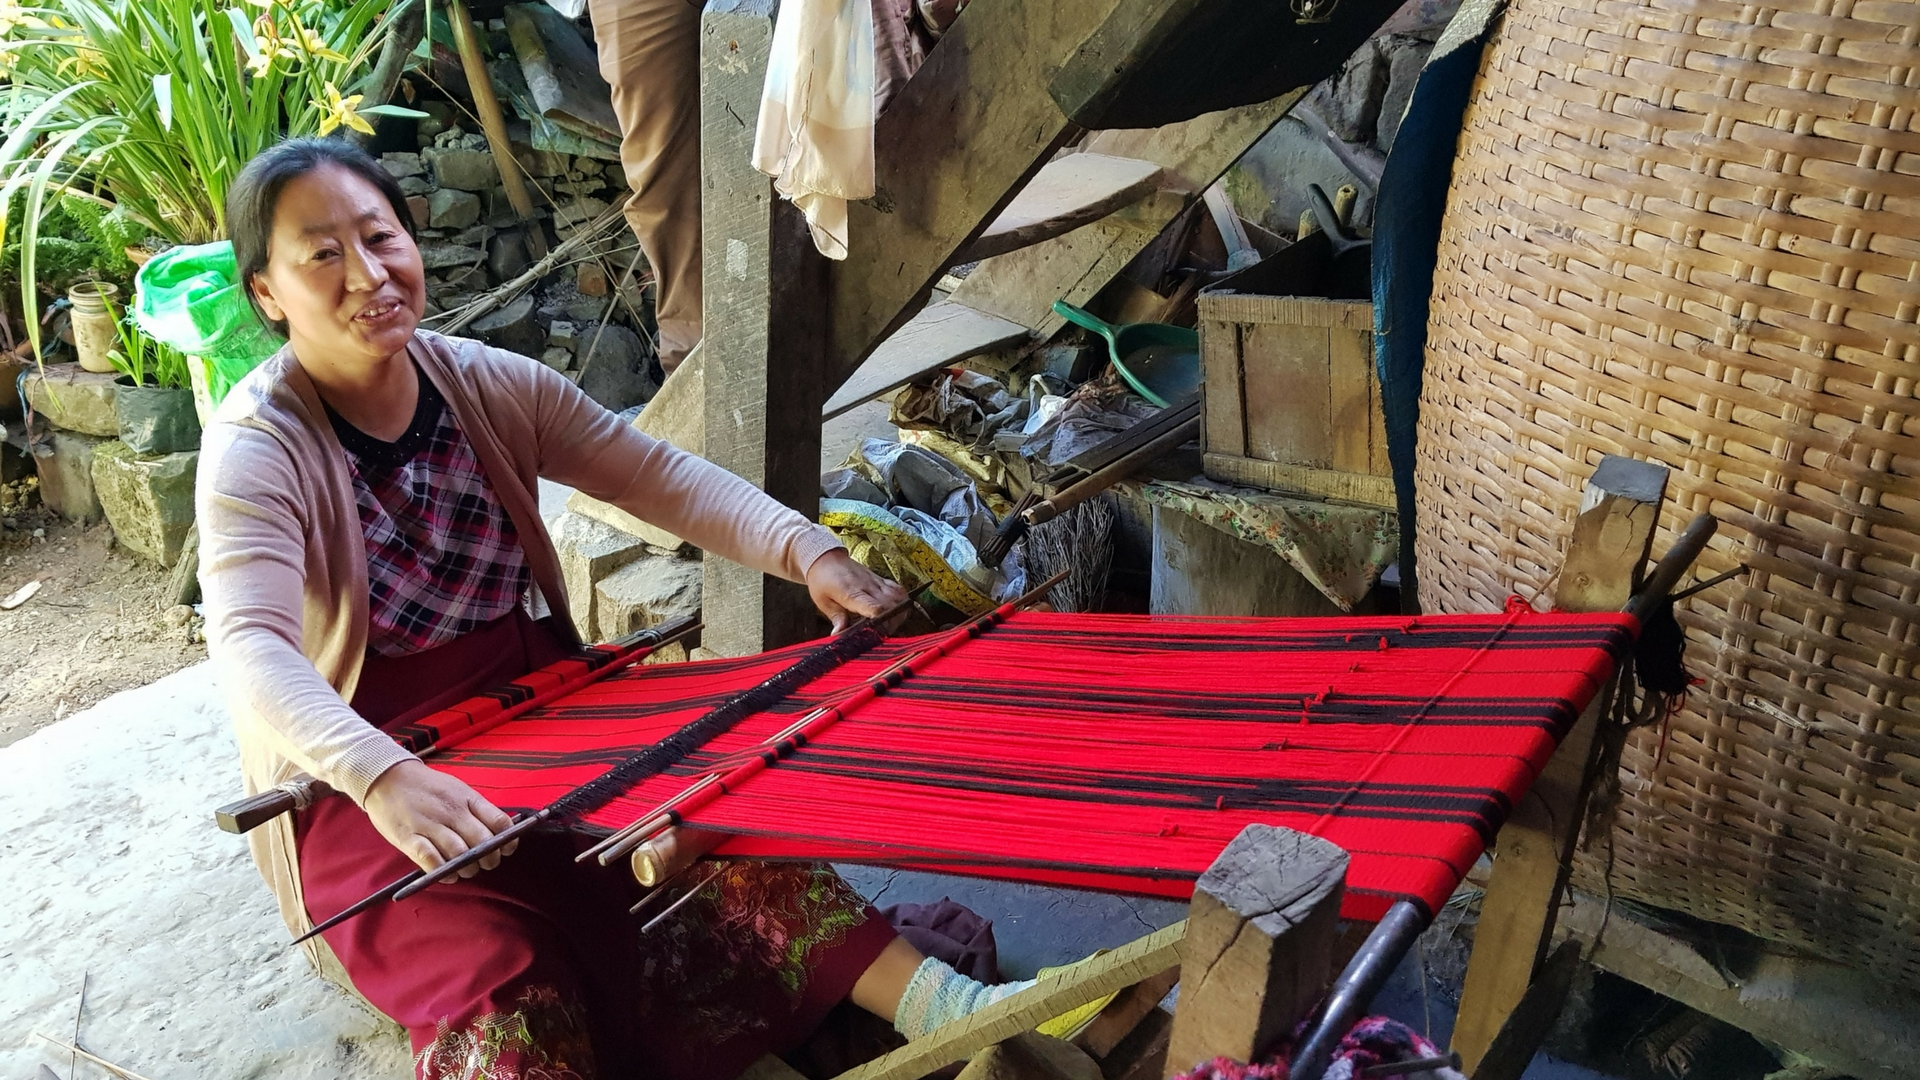 Northeast India fashion and design council (FNDC) celebrates National handloom day